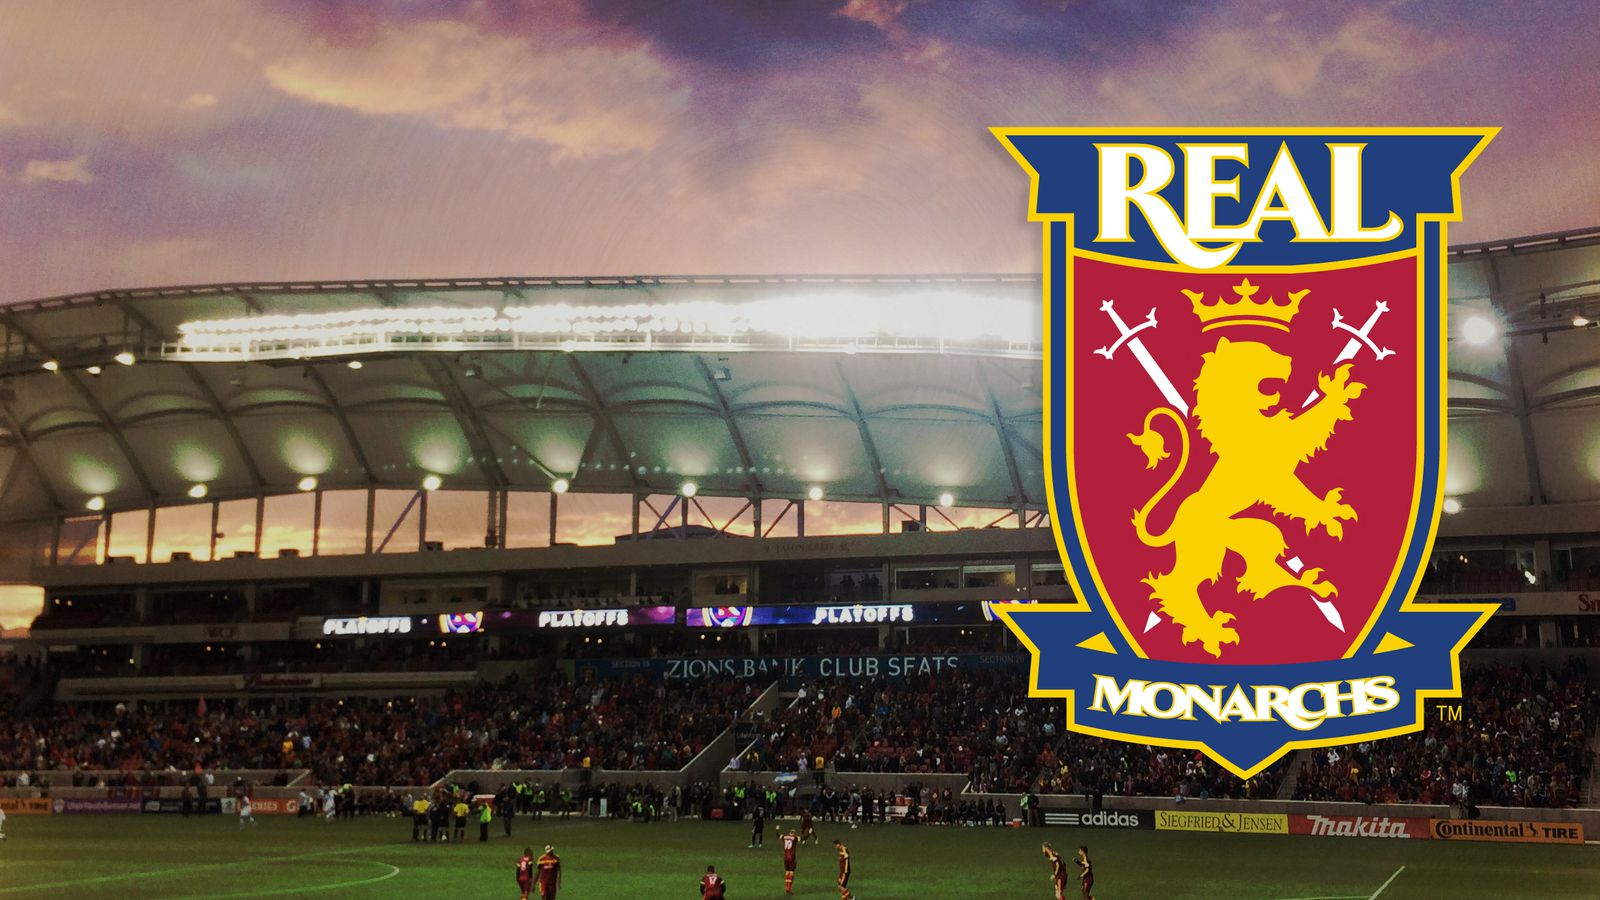 Real-monarchs-placeholder.0.0